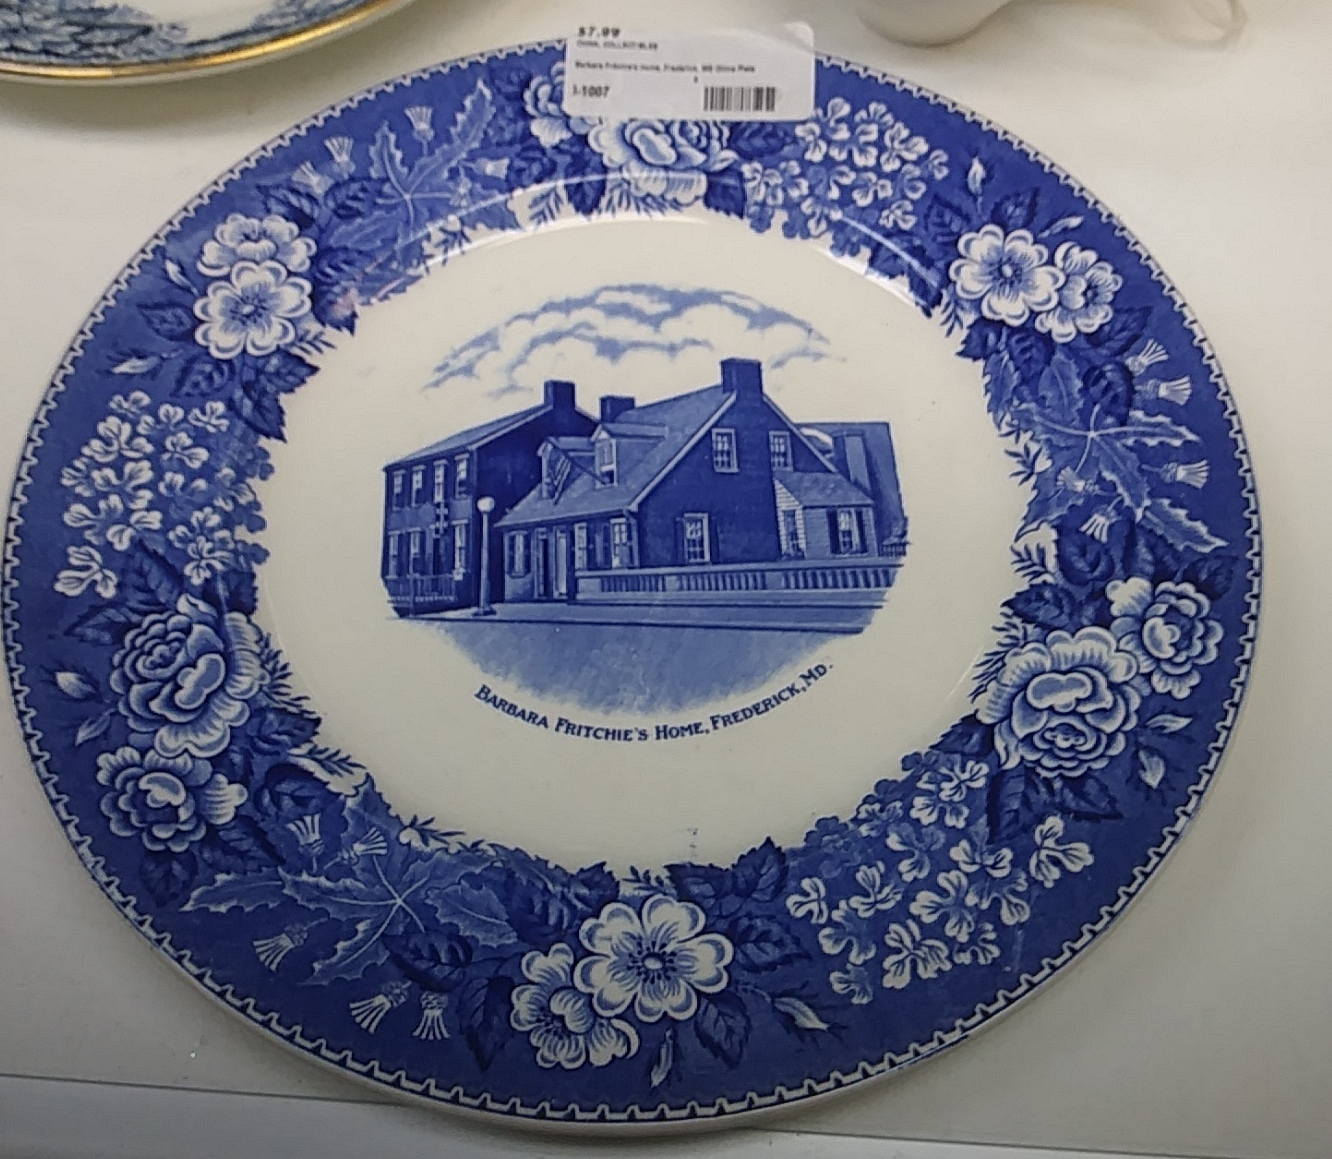 Barbara Fritchie's Home China Plate